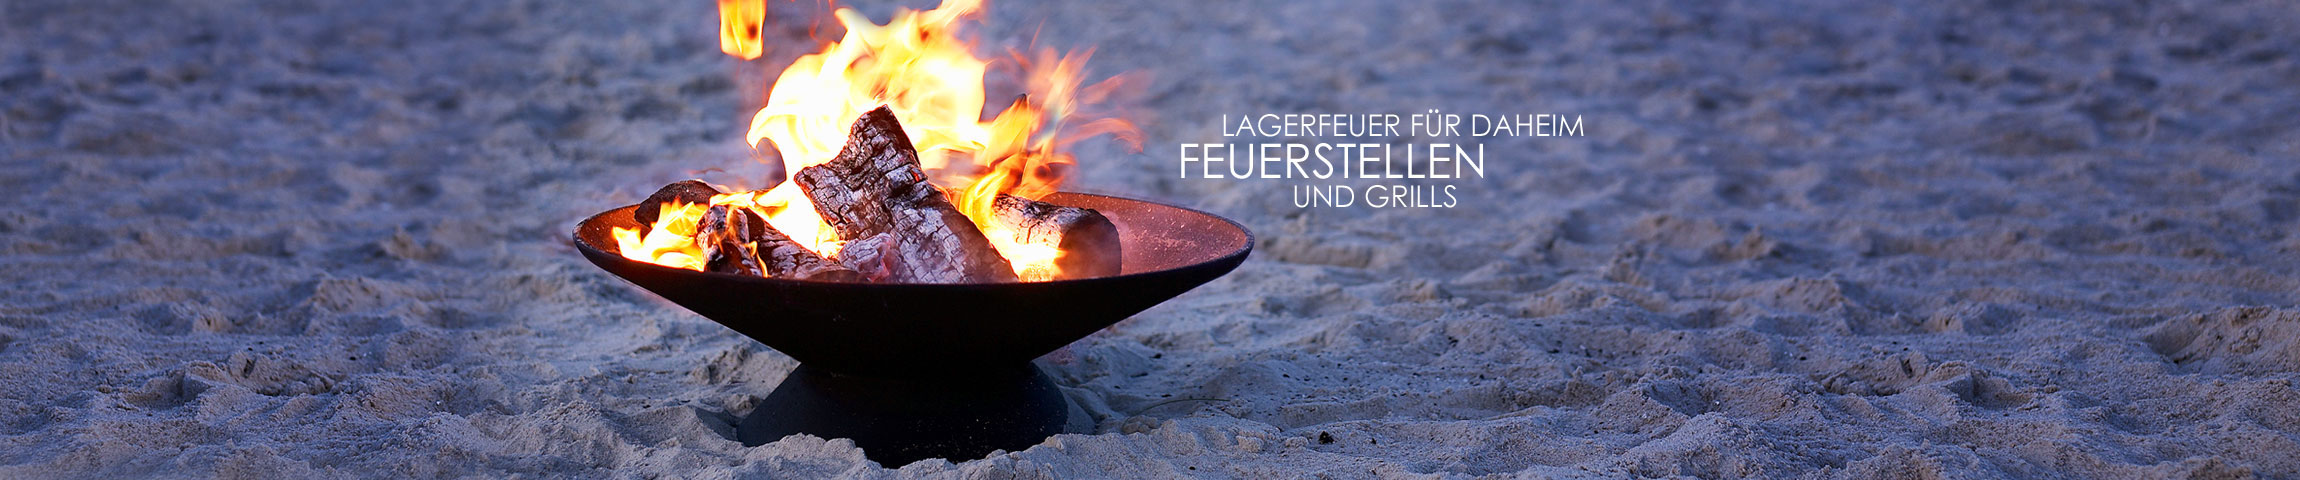 Feuer & Grill